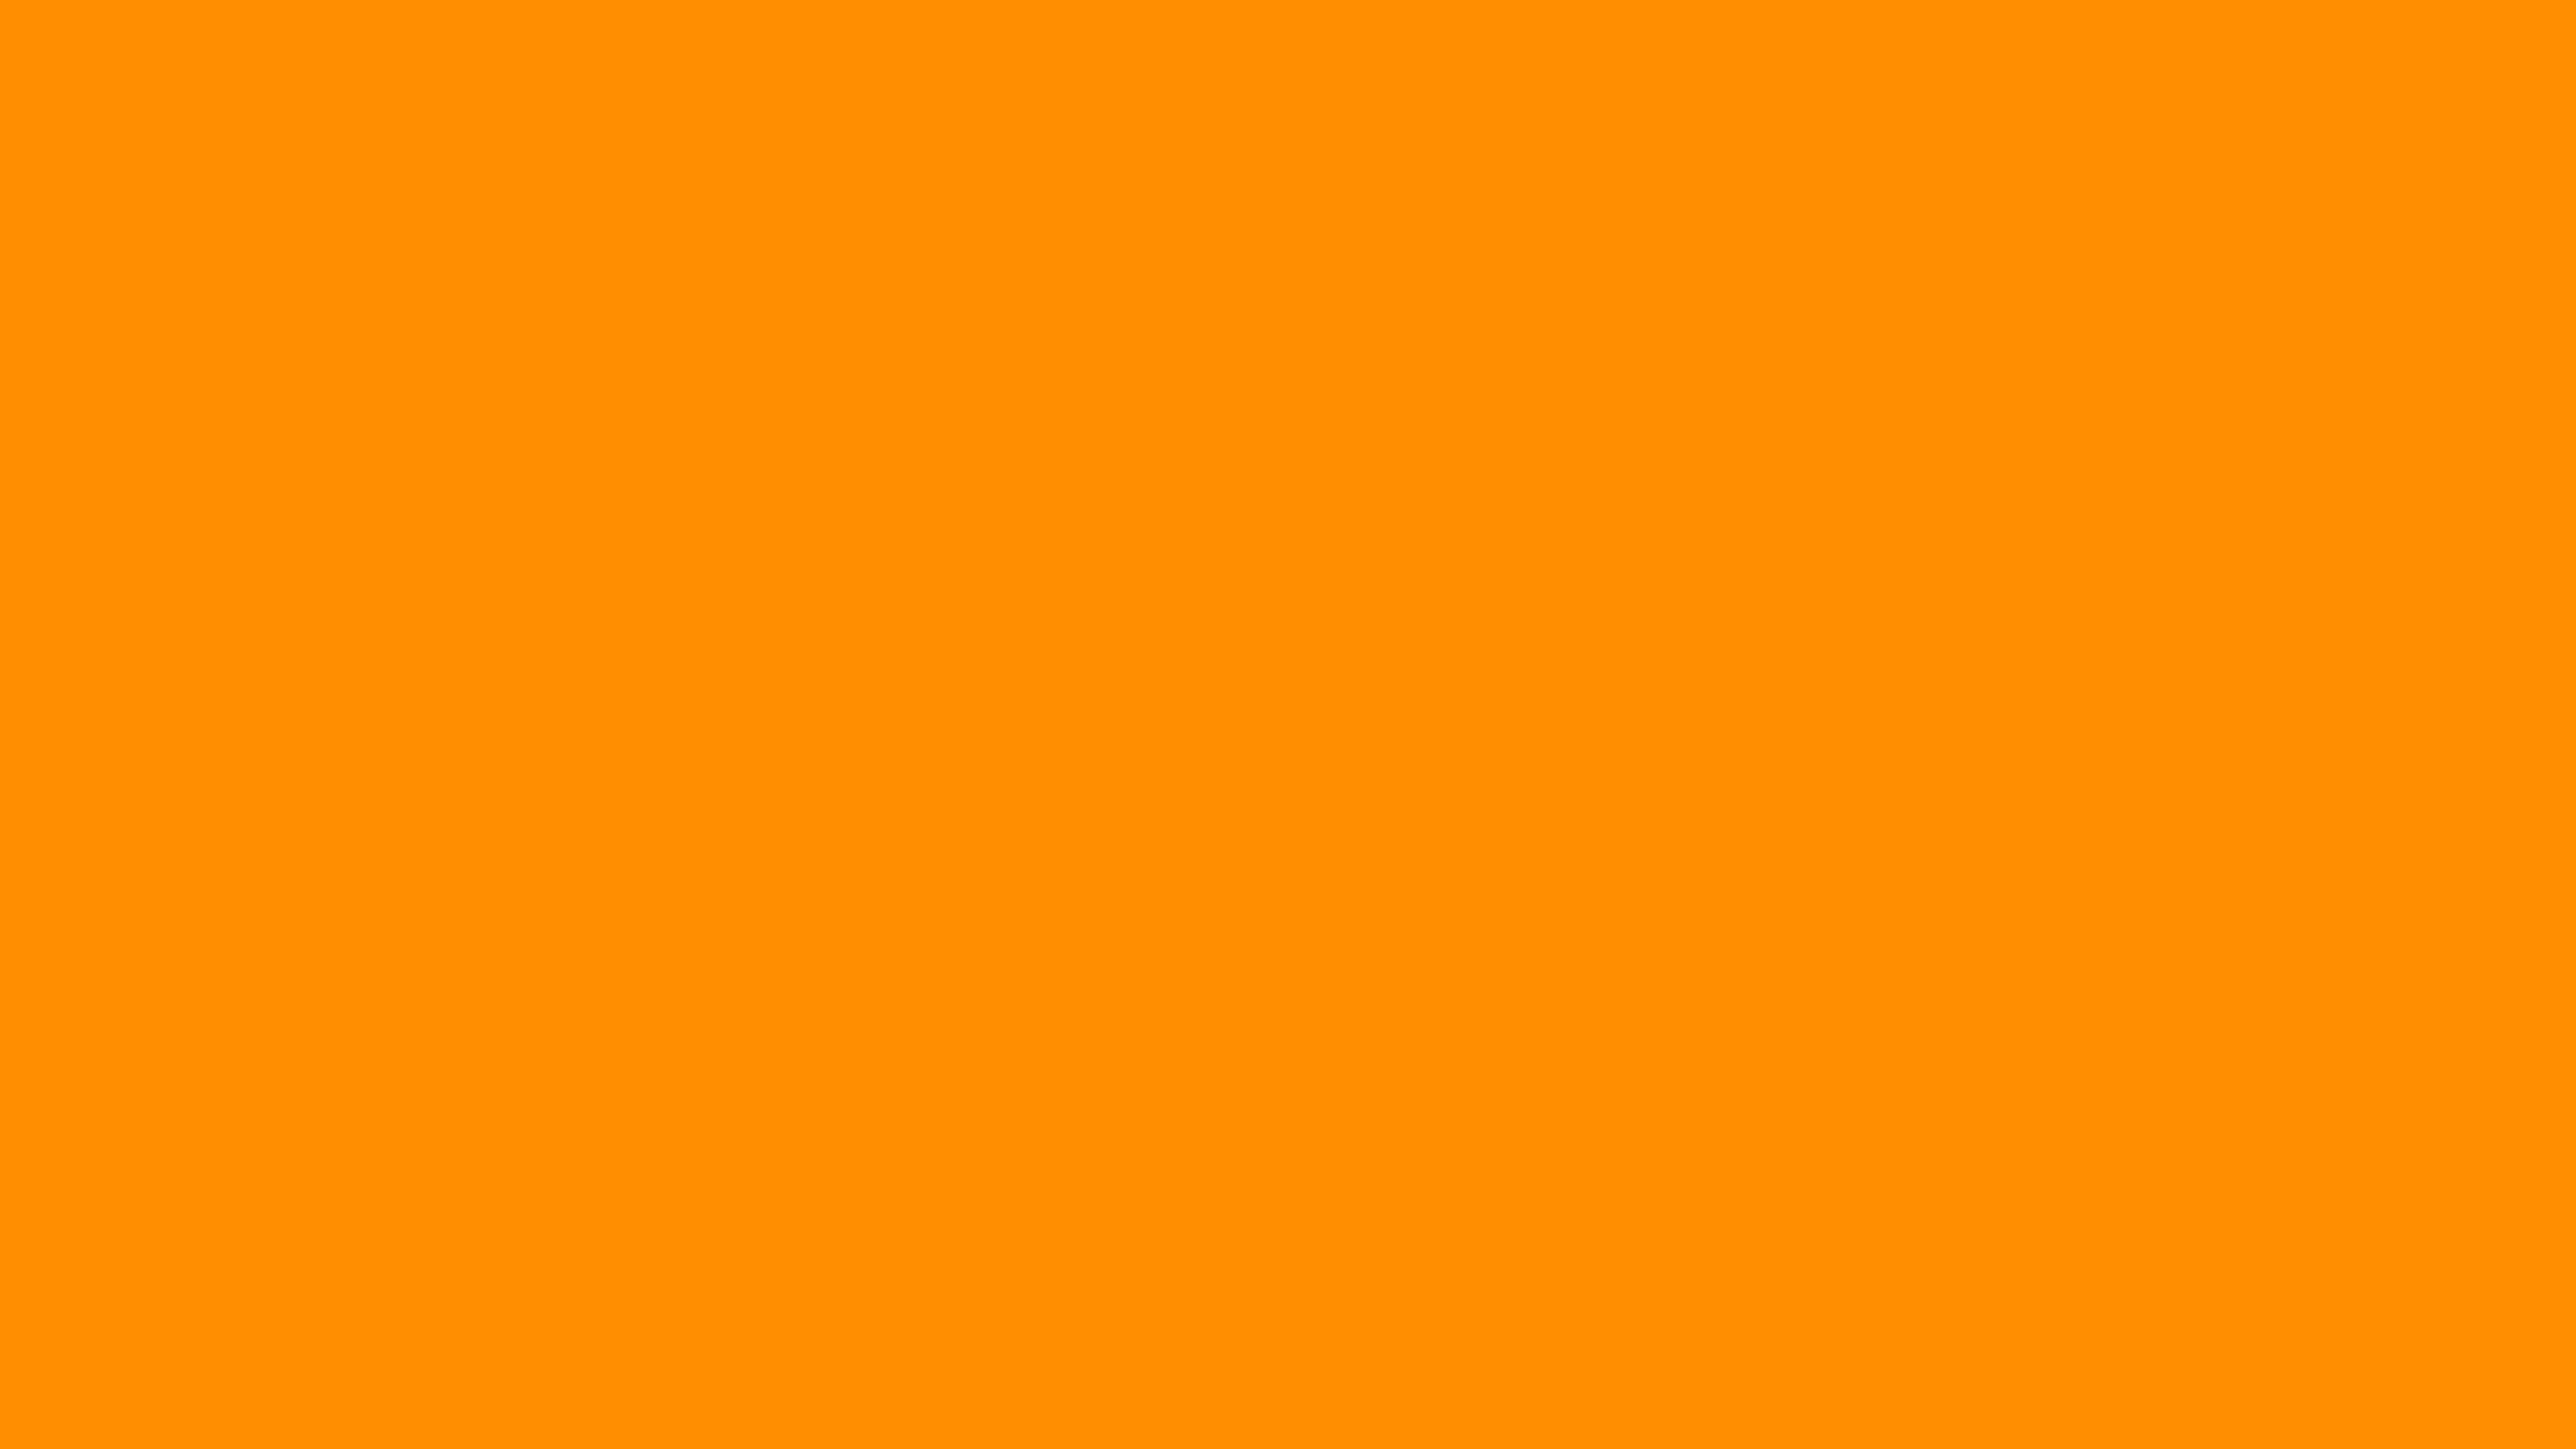 5120x2880 Princeton Orange Solid Color Background